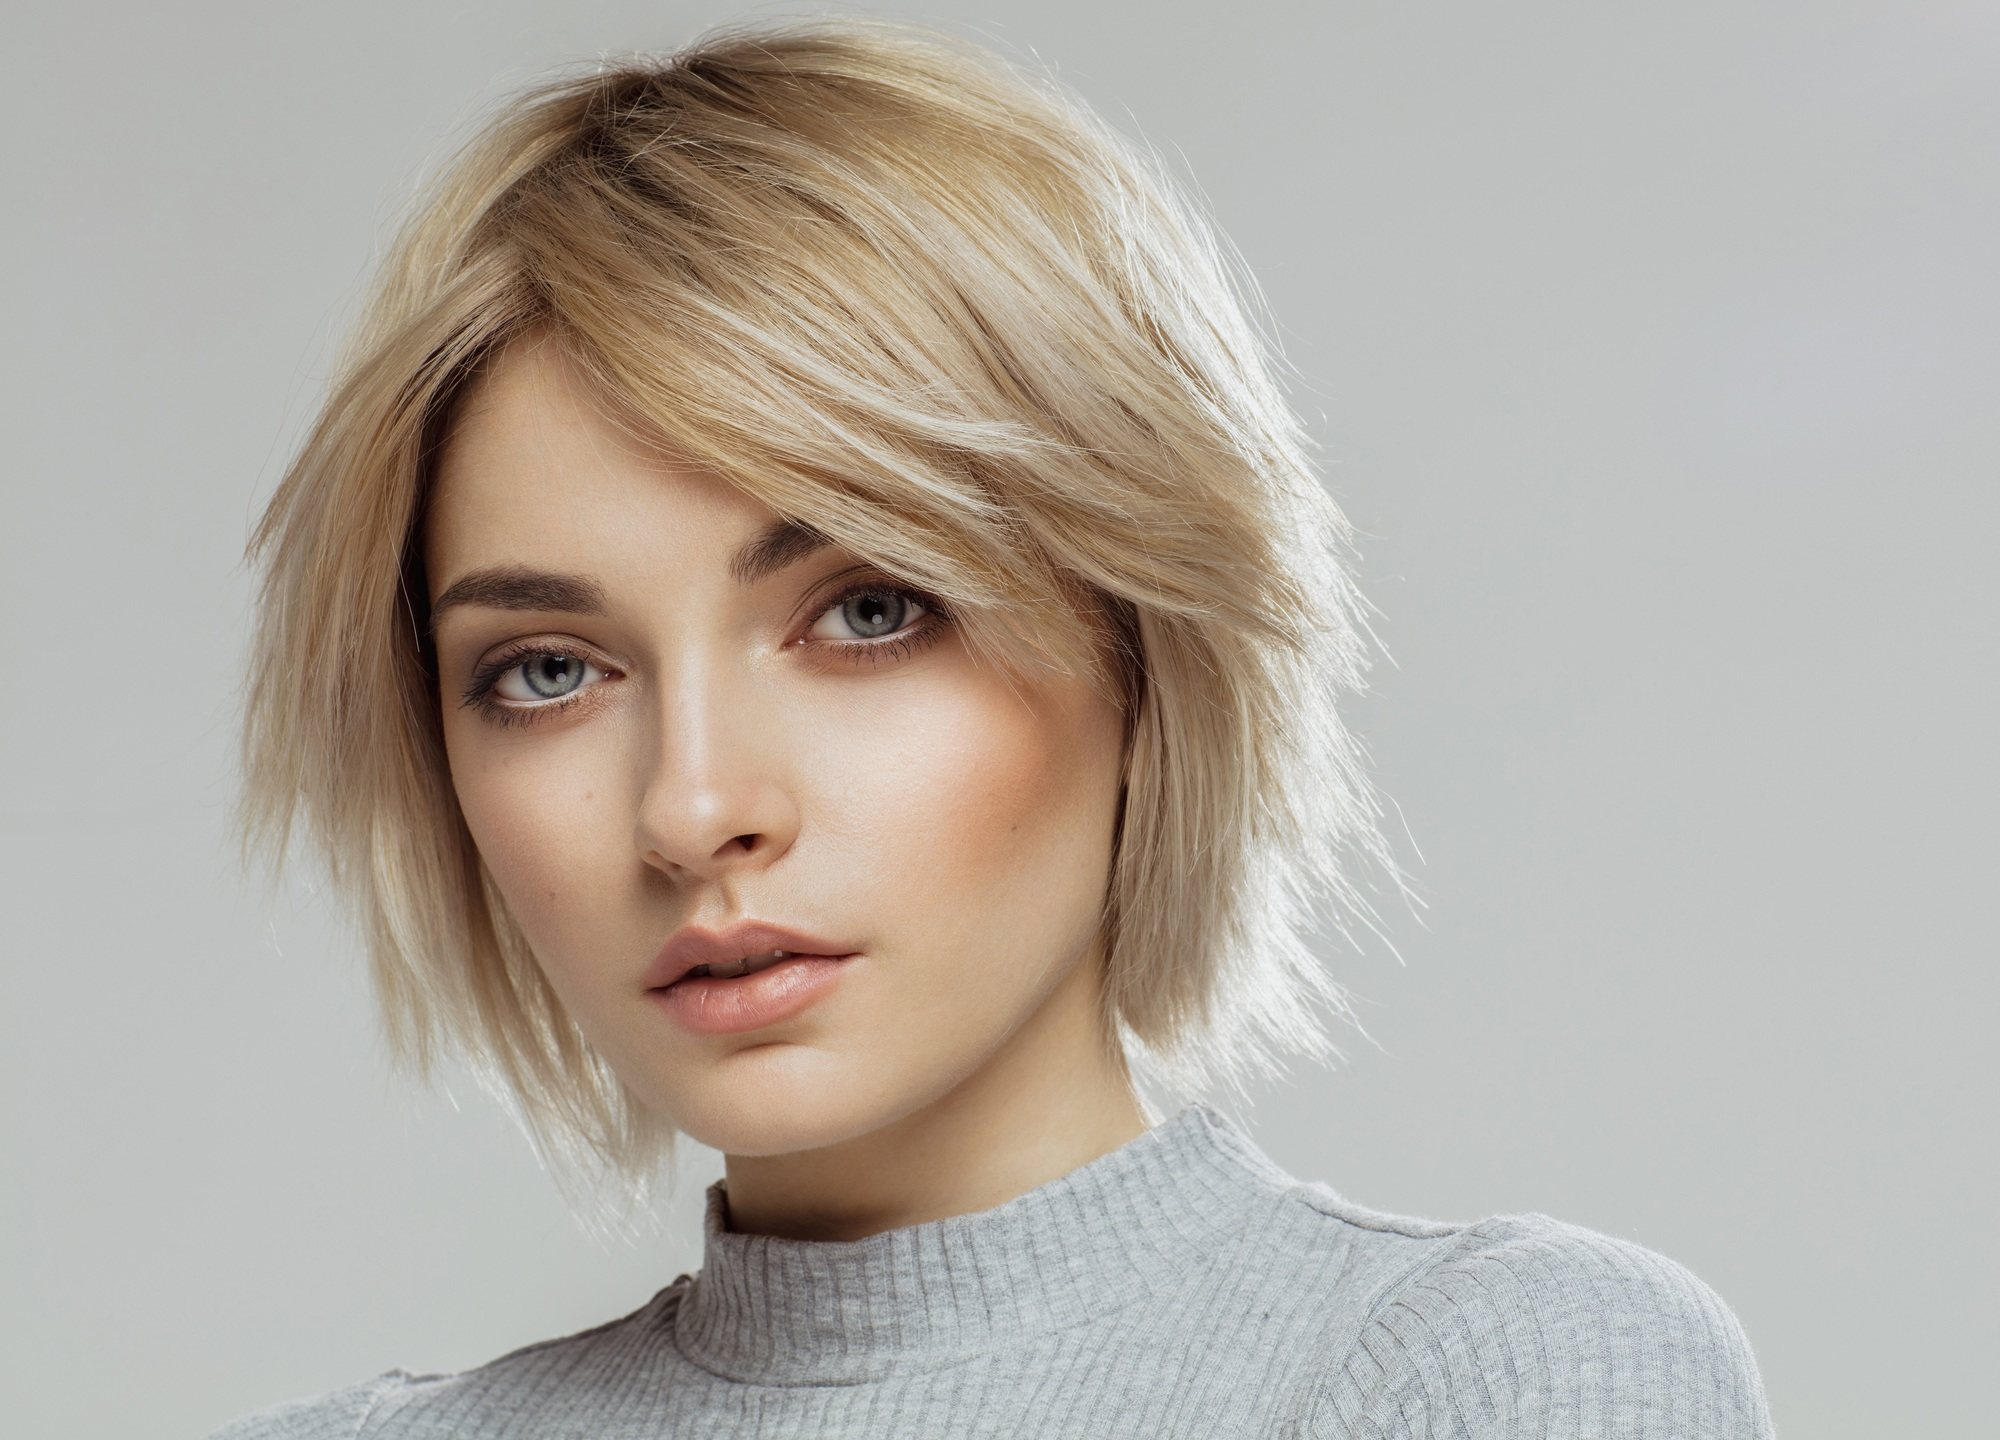 Short blonde hair: Hairstyles and haircuts to try